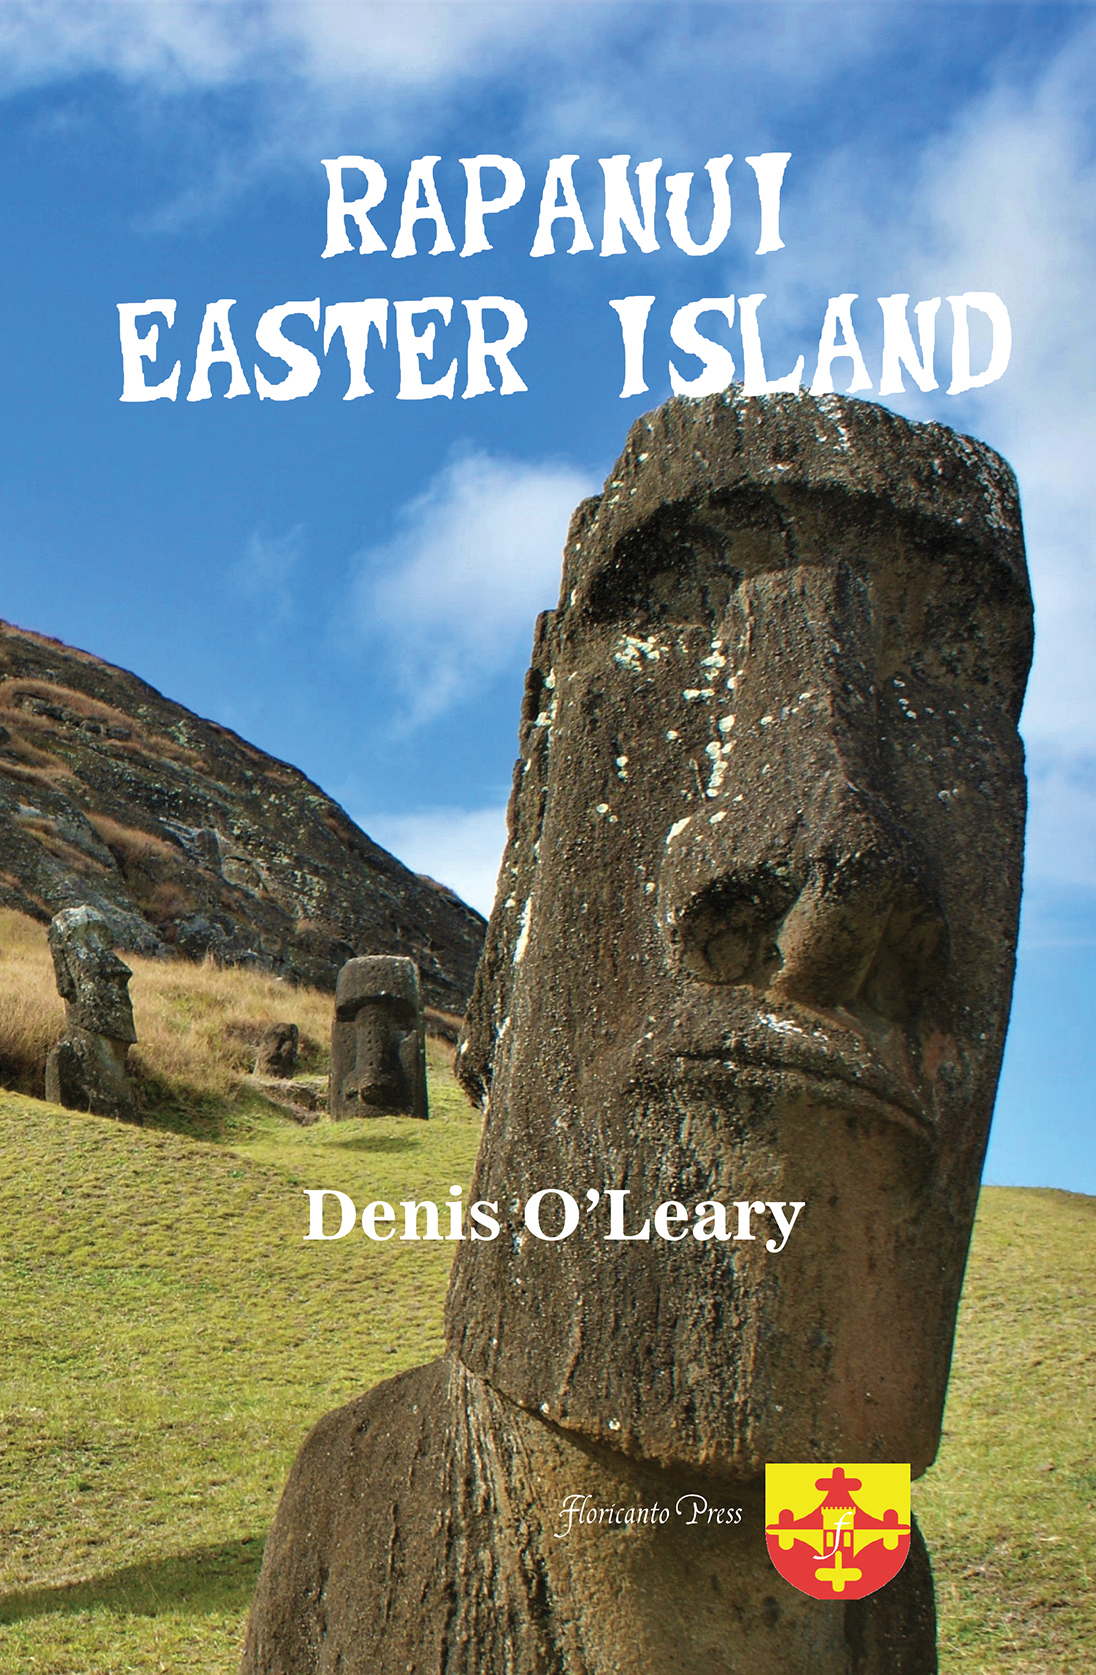 Rapanui. Easter Island. By Denis O'Leary.